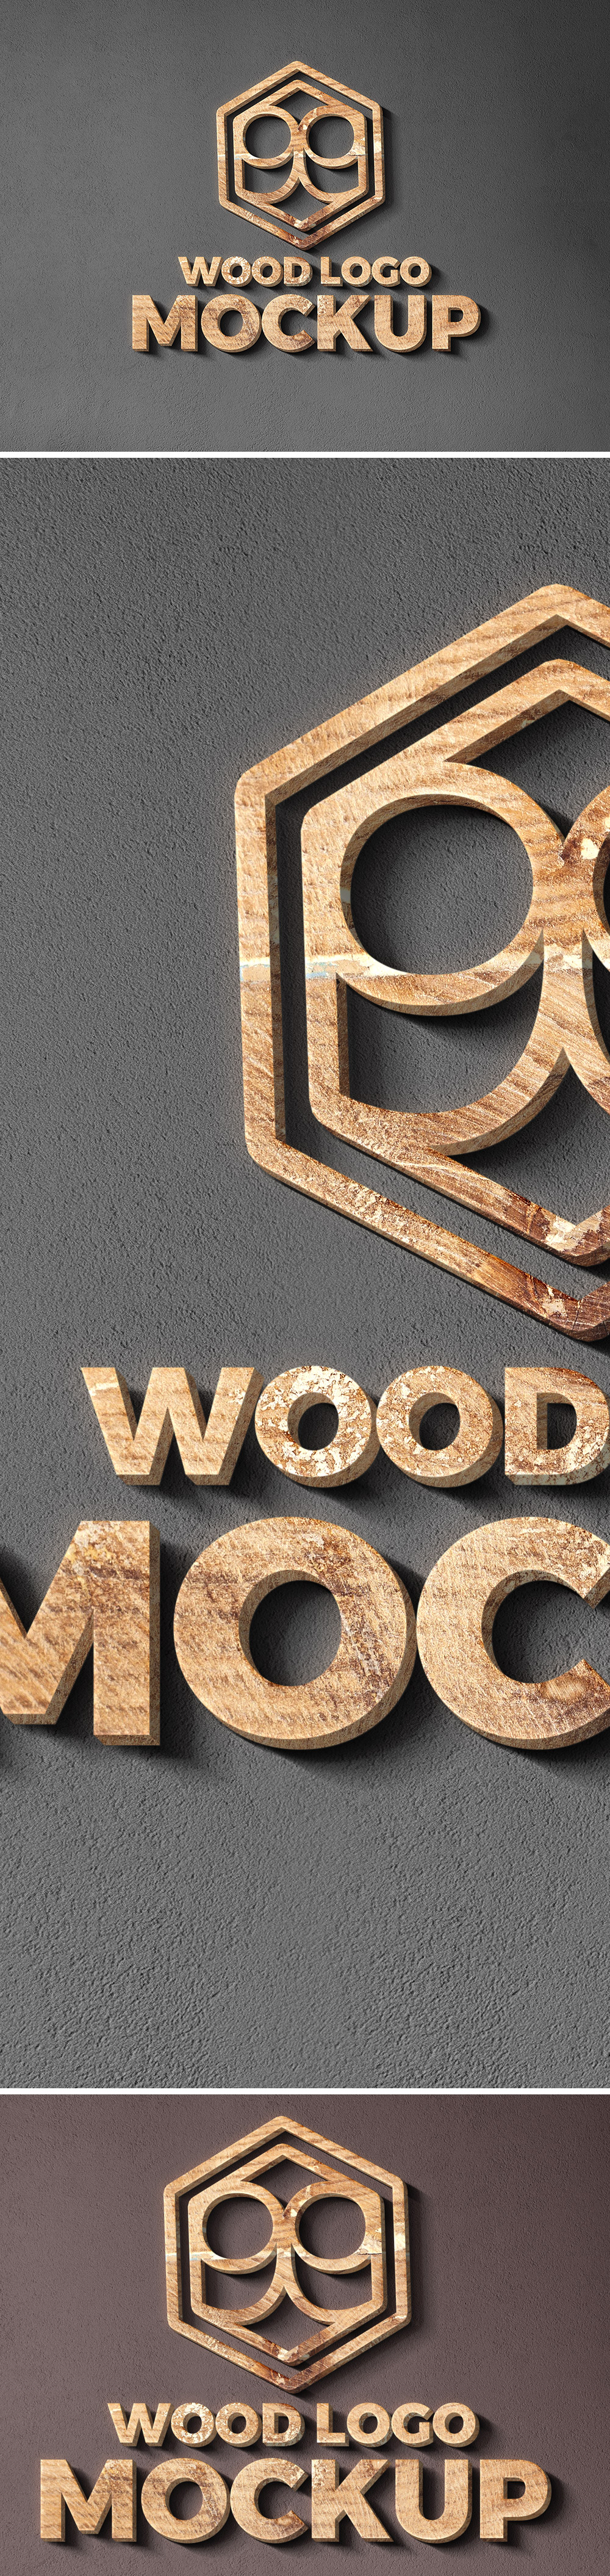 Wood Cut Logo Mockup